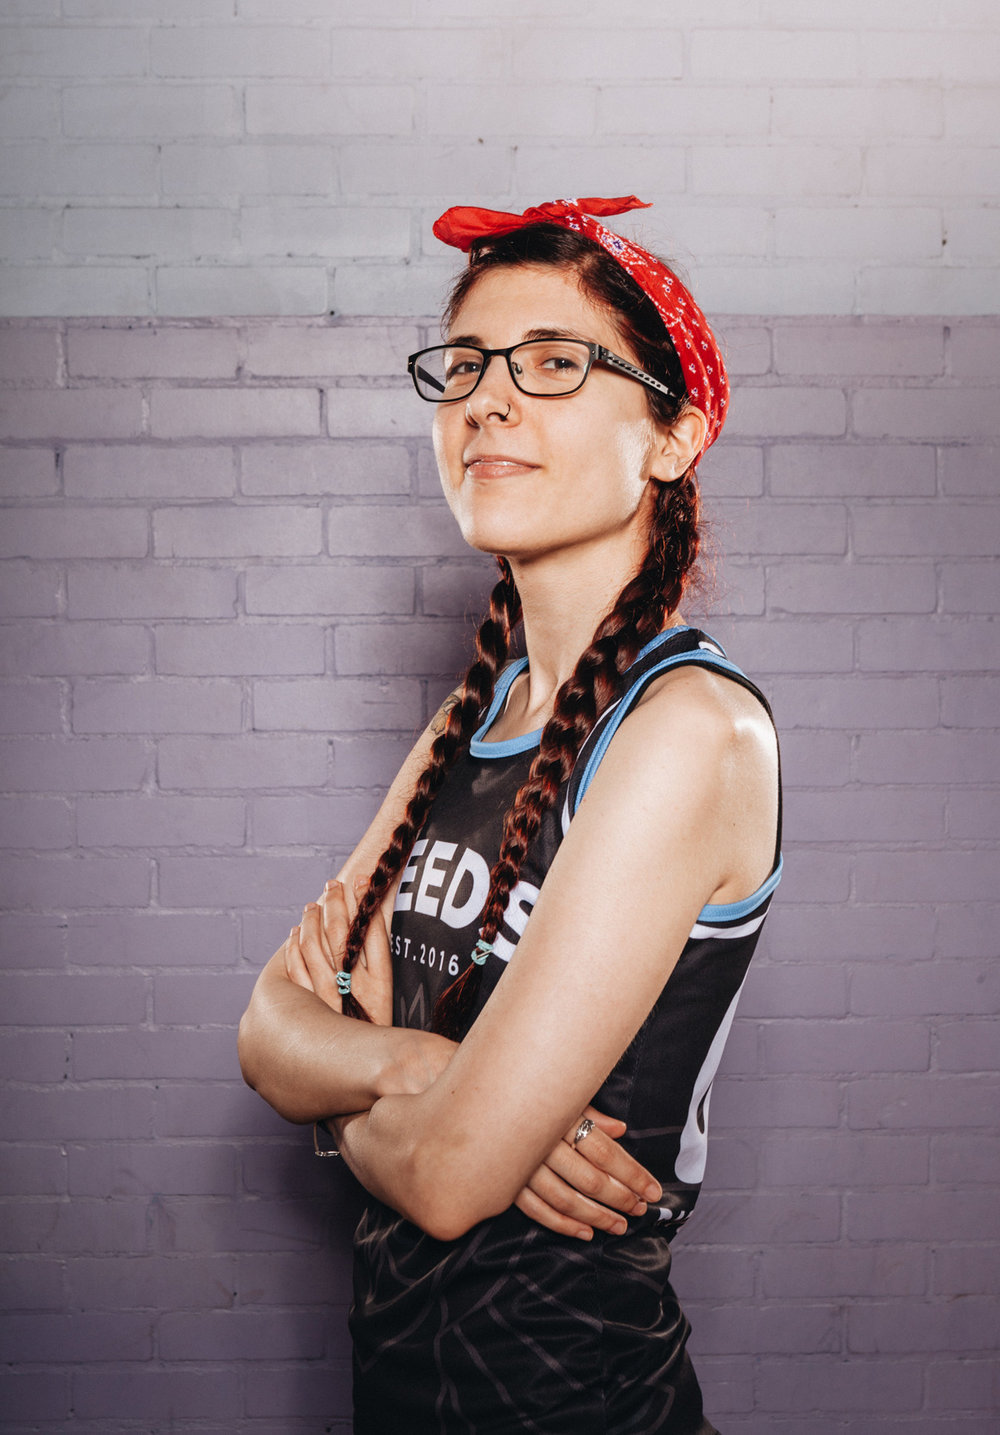 ©TomWoollard_Leeds-Roller-Derby-Team-Daffothrill-woman-skater-athlete-portrait.jpg